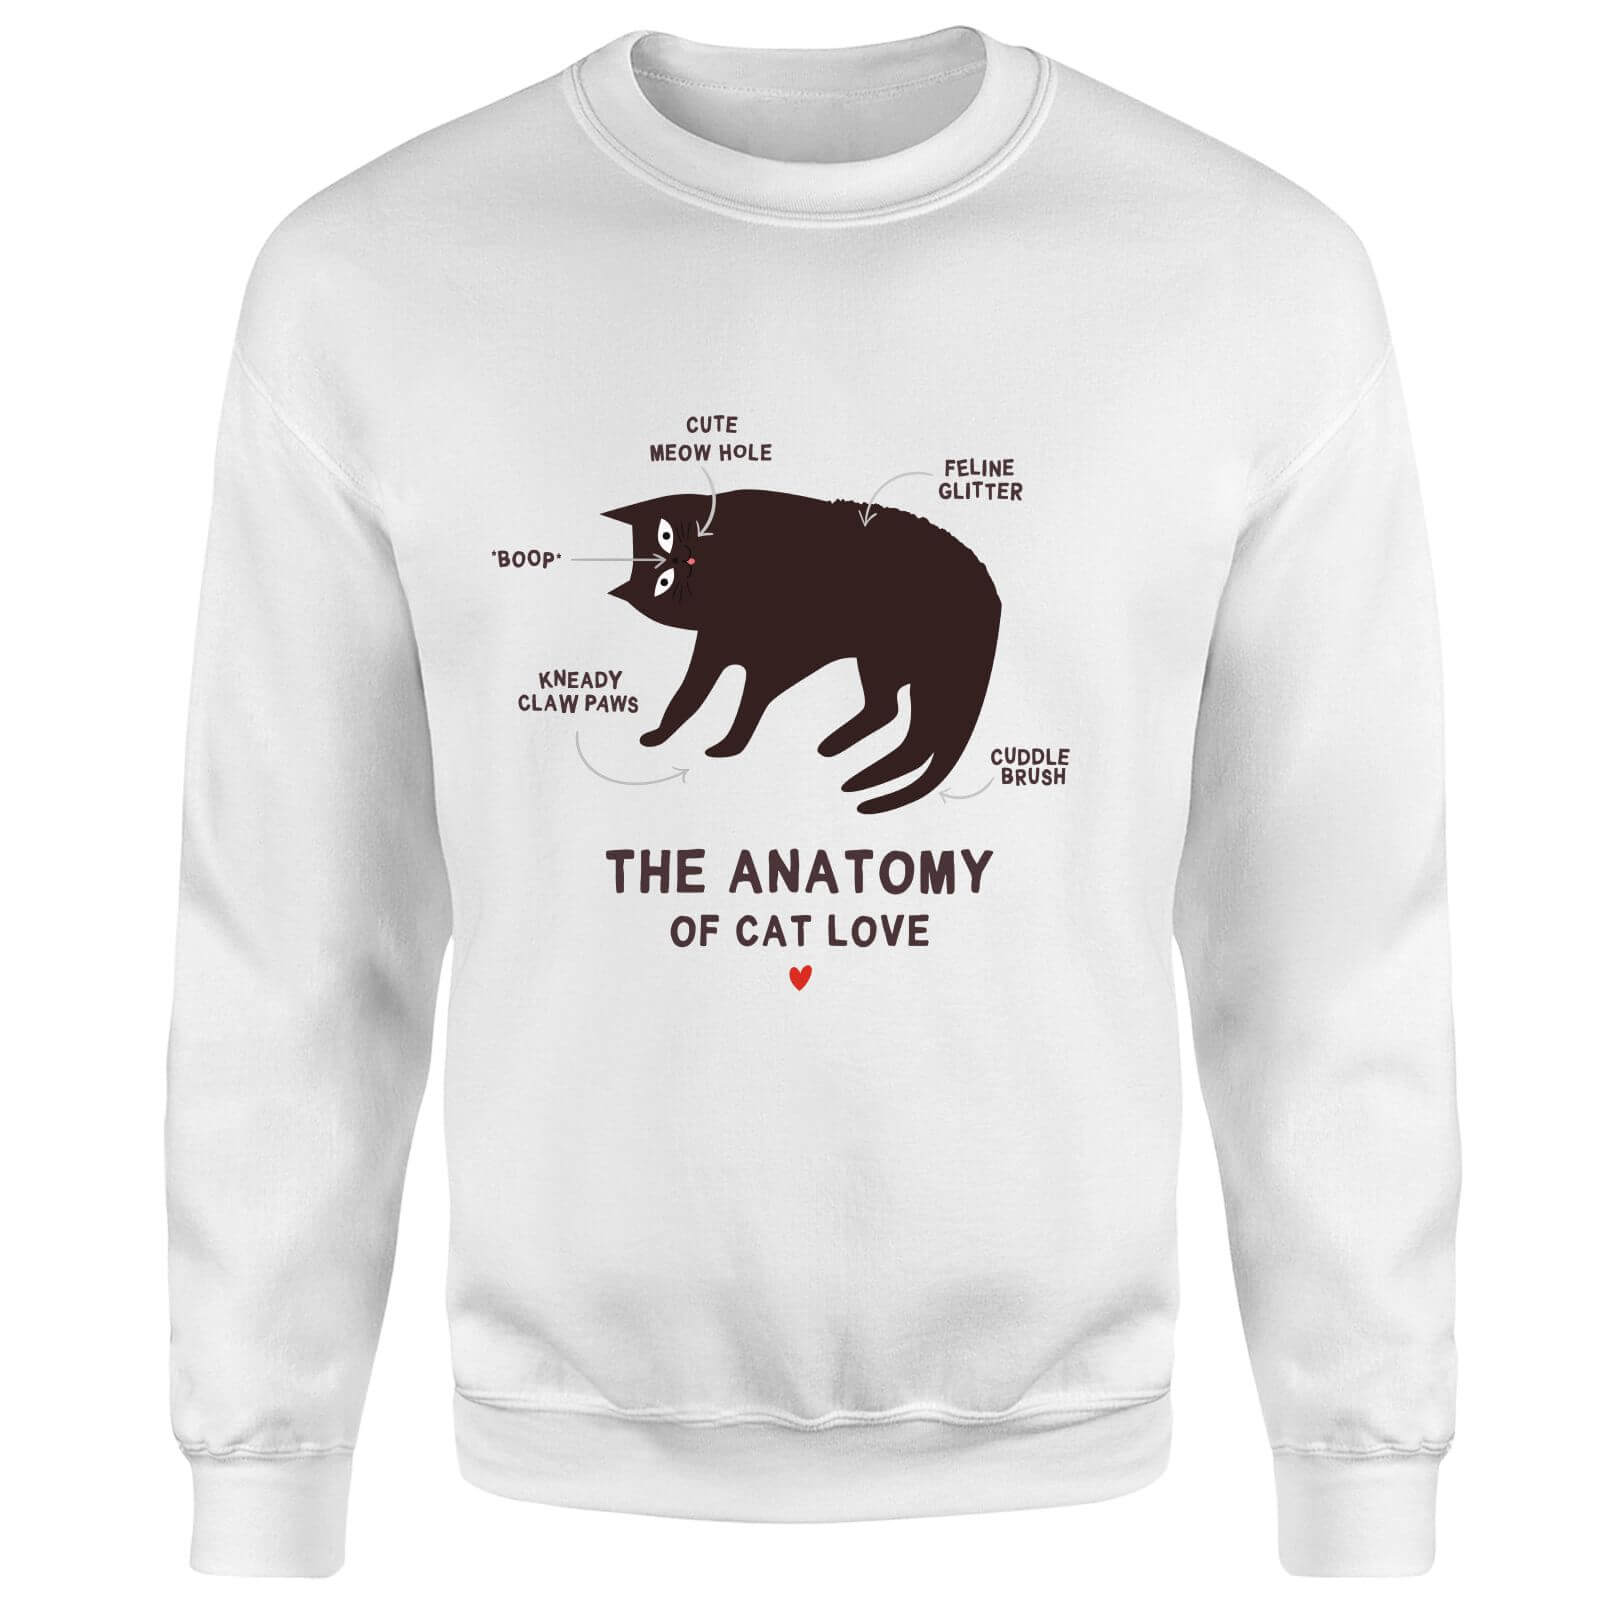 The Anatomy Of Cat Love Sweatshirt - White